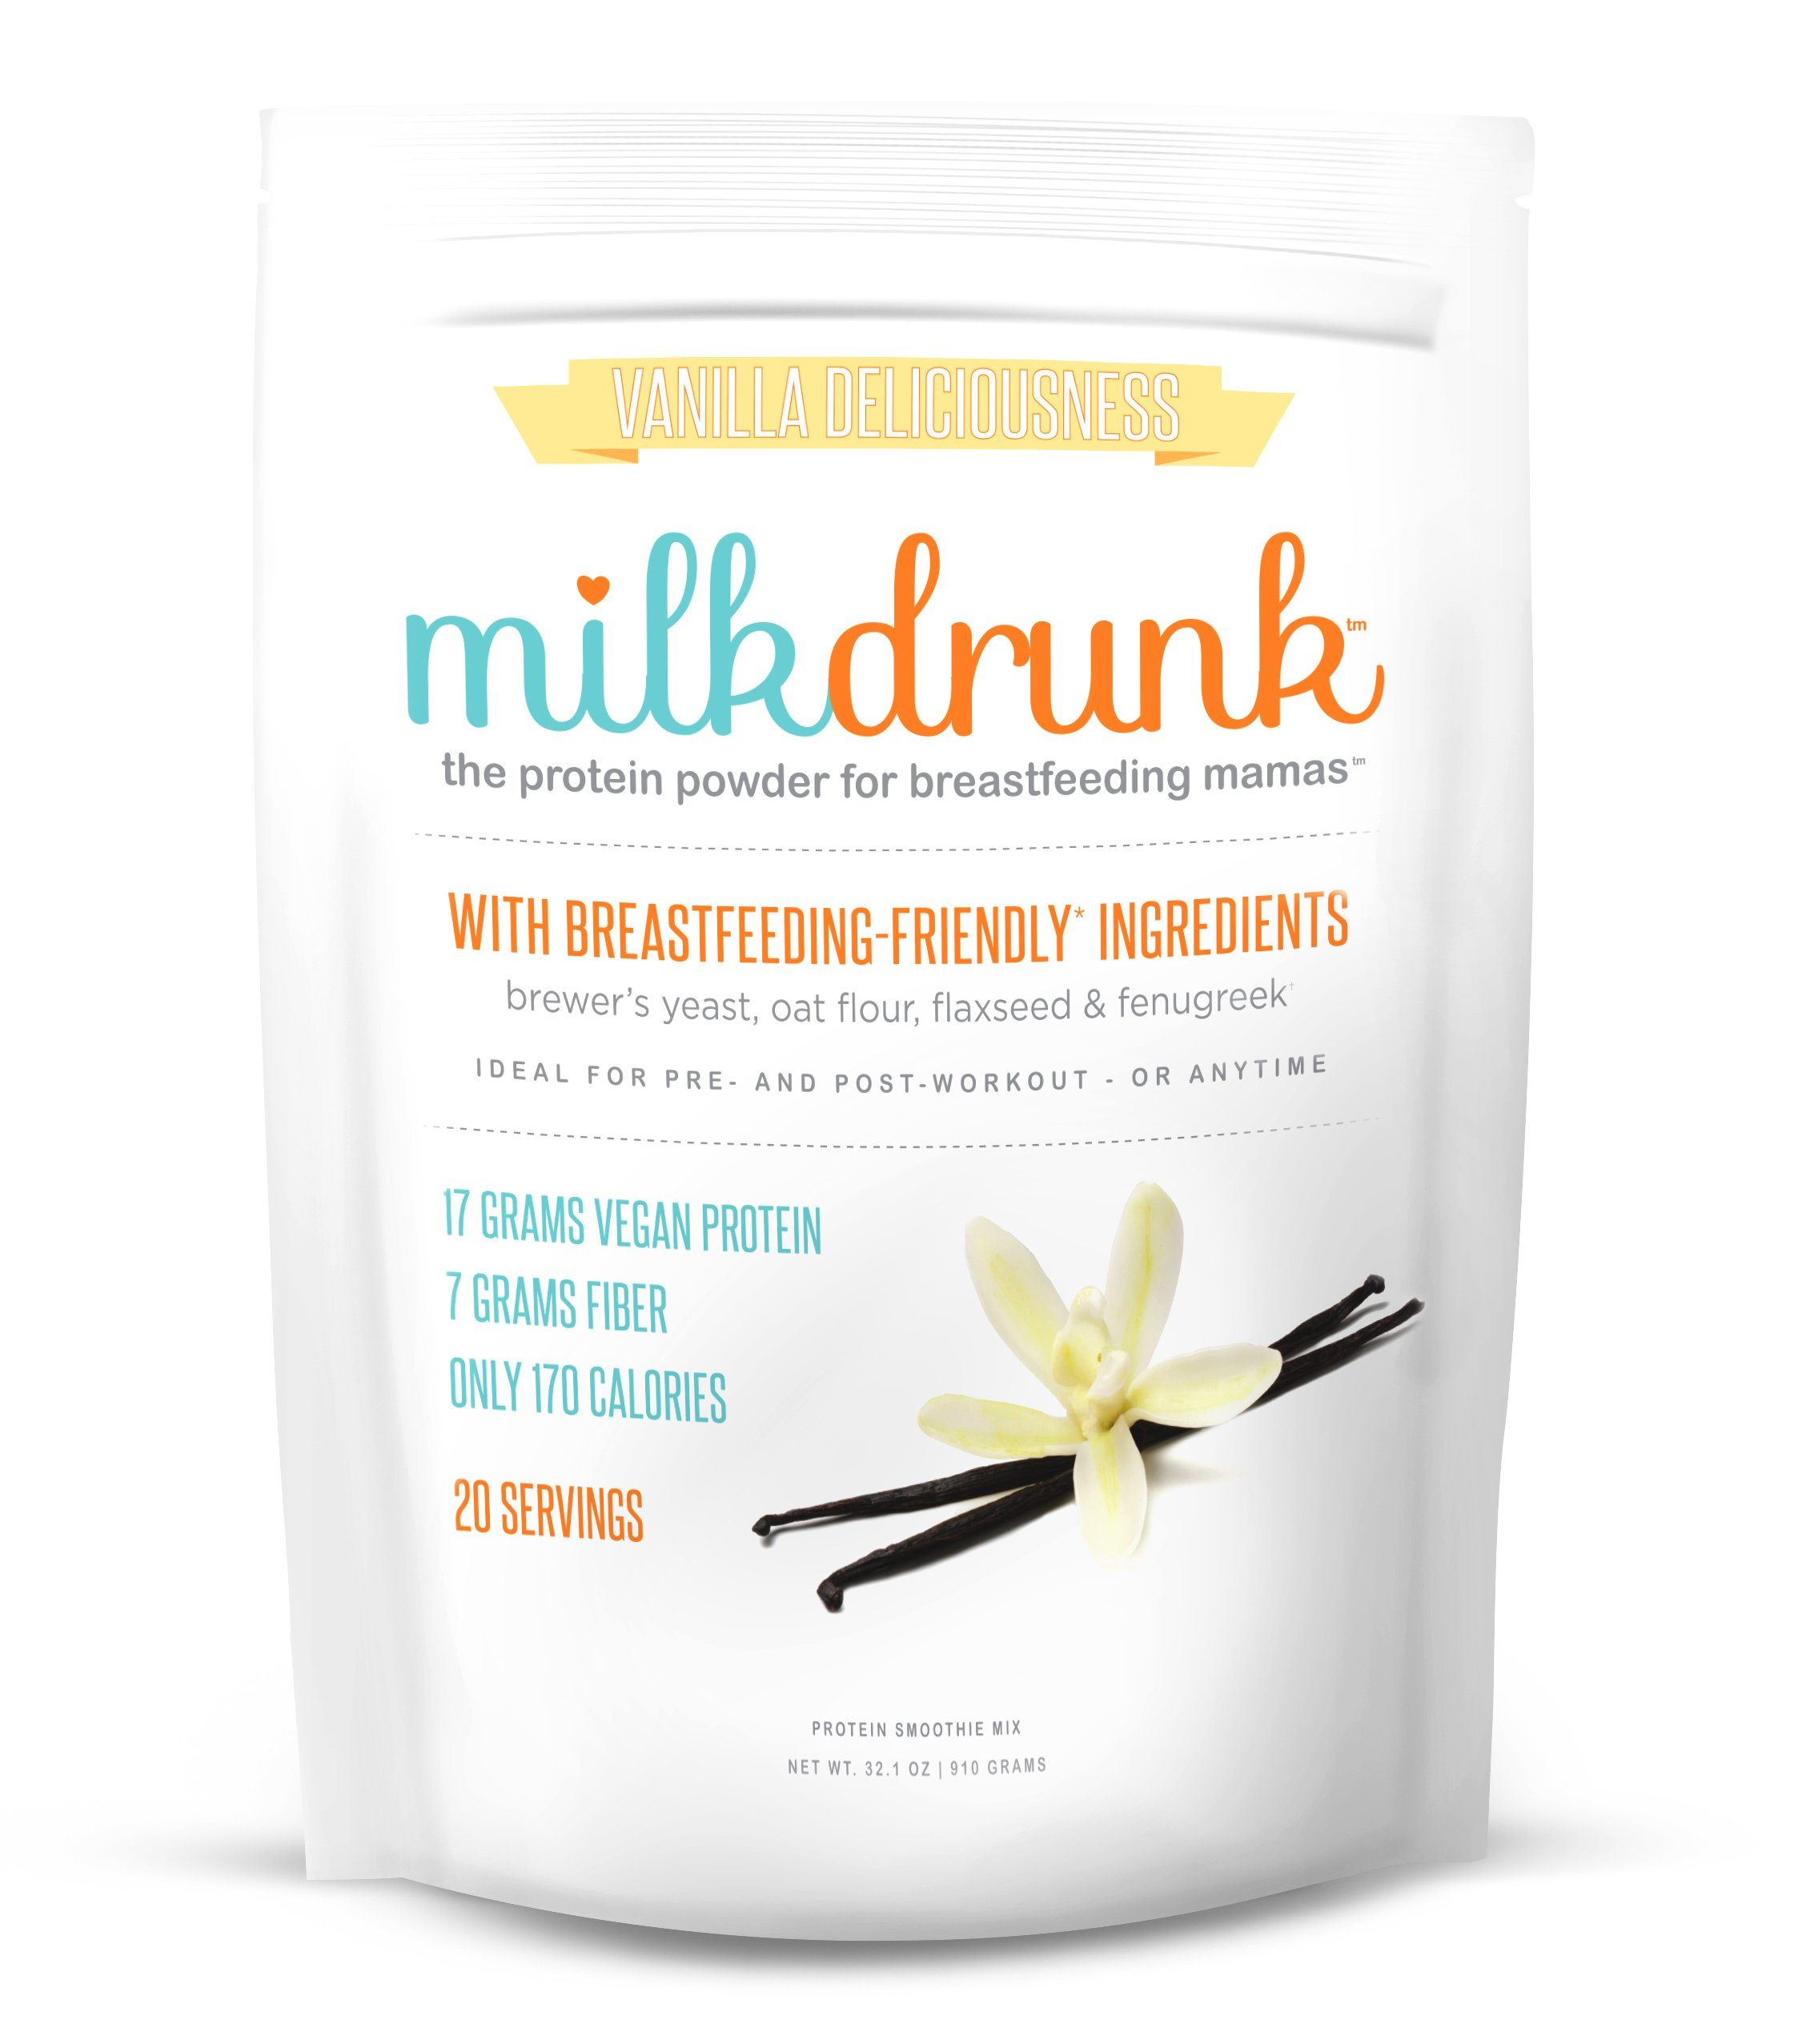 Milk Drunk - Protein Powder for Breastfeeding Mamas - 20 Servings of Vegan Protein & Lactation-Boosting Ingredients - 17g Protein 7g Fiber 5g Sugar - Oat Flour, Flaxseed, Brewer's Yeast & Fenugreek